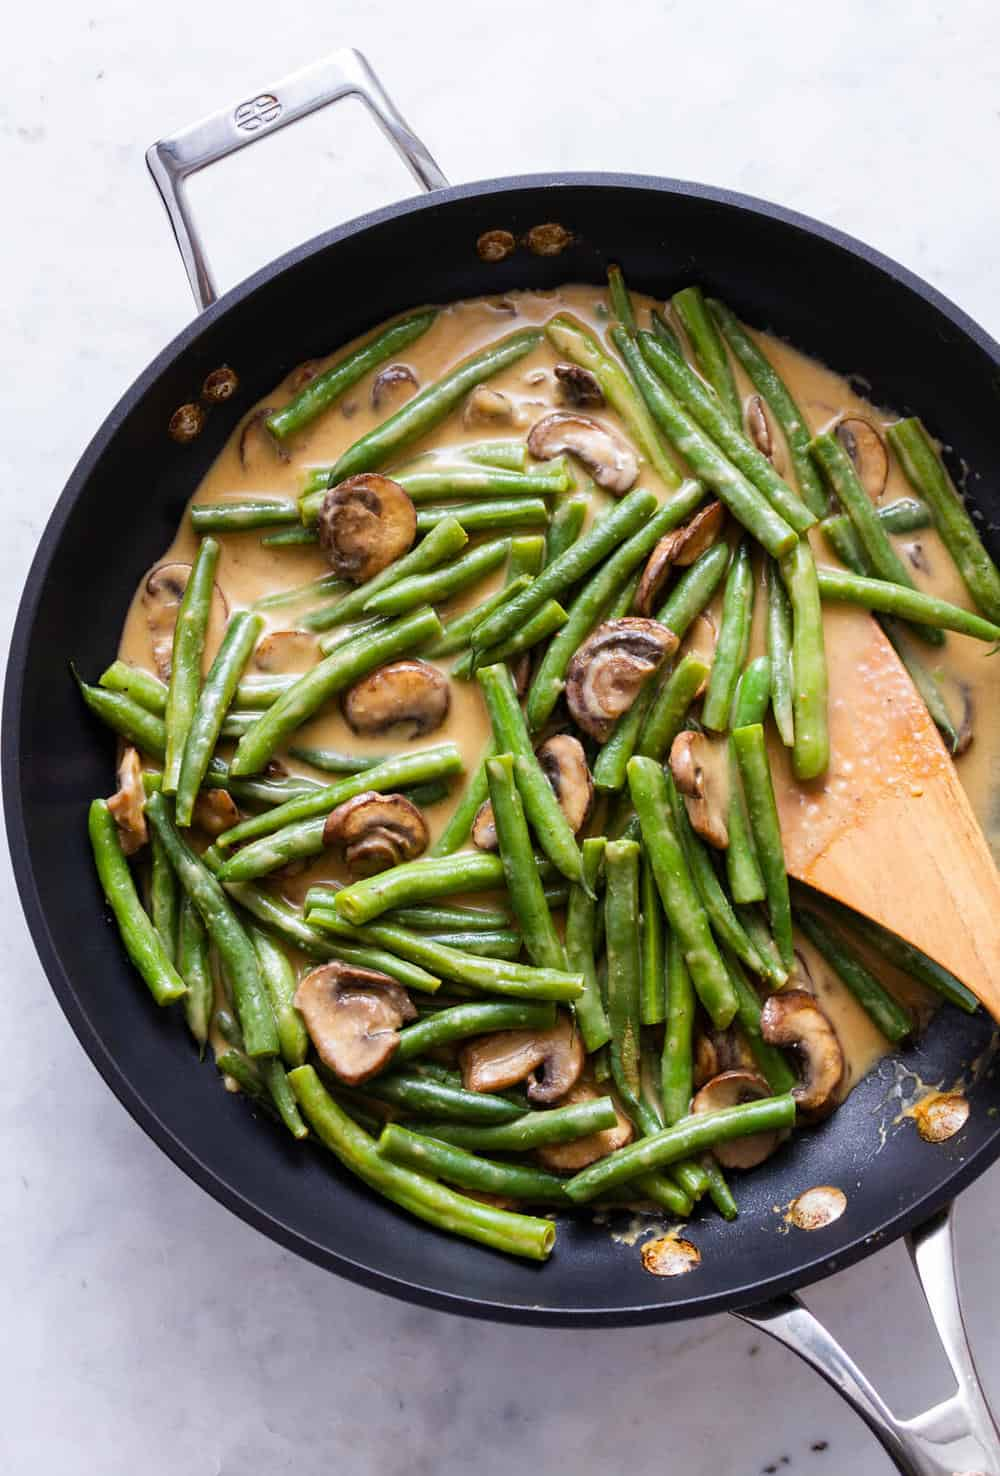 green bean casserole in the making, mixing the green beans with the mushroom gravy in a flat bottom, shallow pan